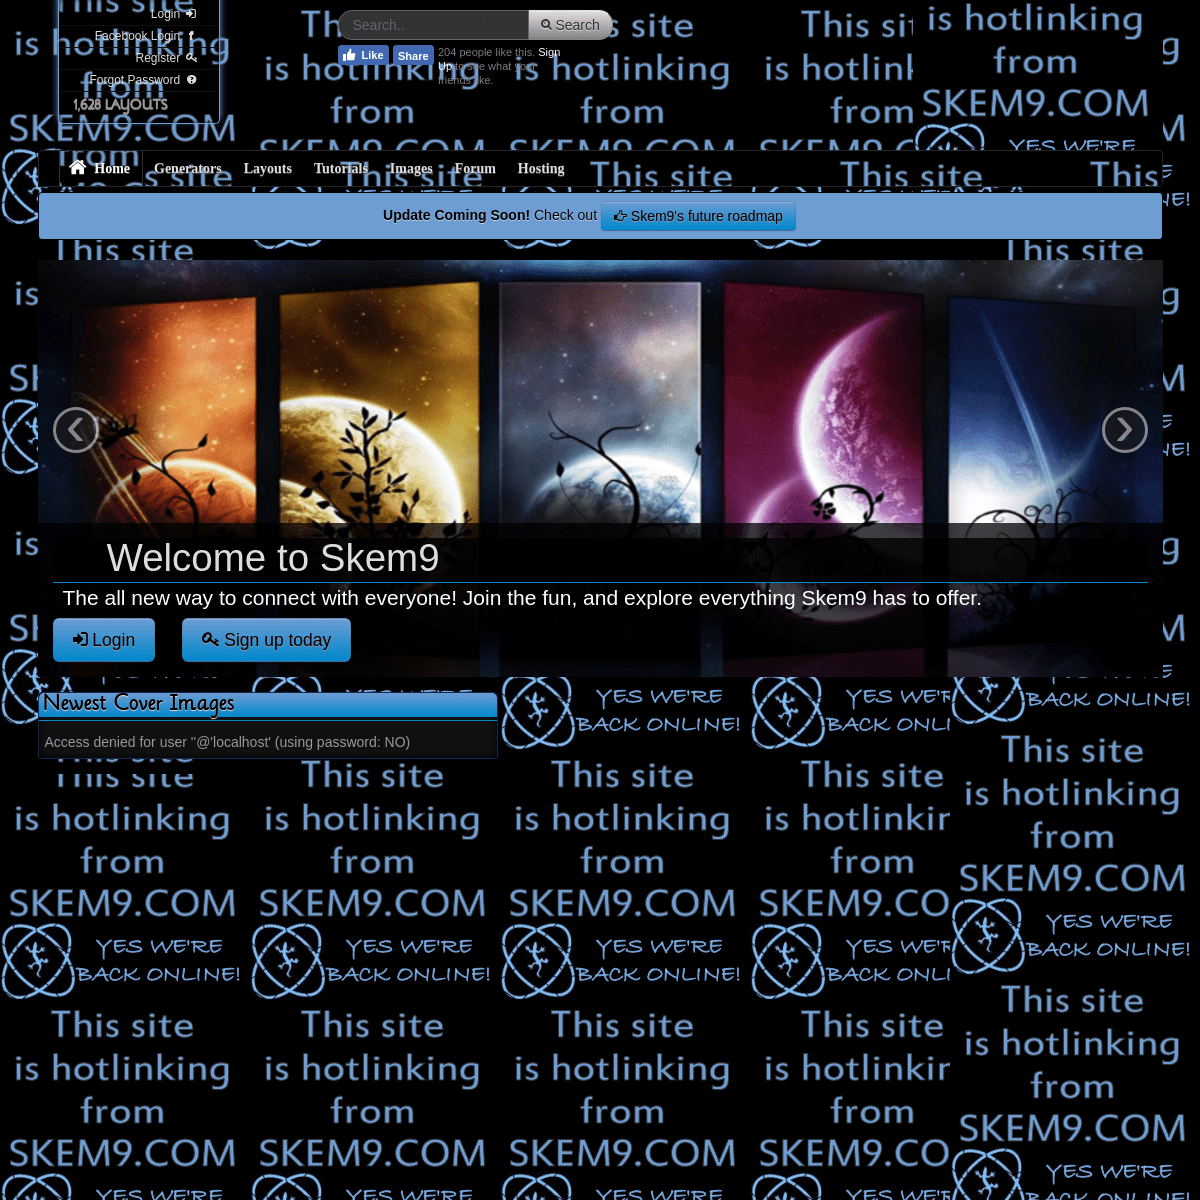 Skem9 .^. Layouts, Codes, Tutorials, Generators, and Images for your website or favorite Social Network site. .^.